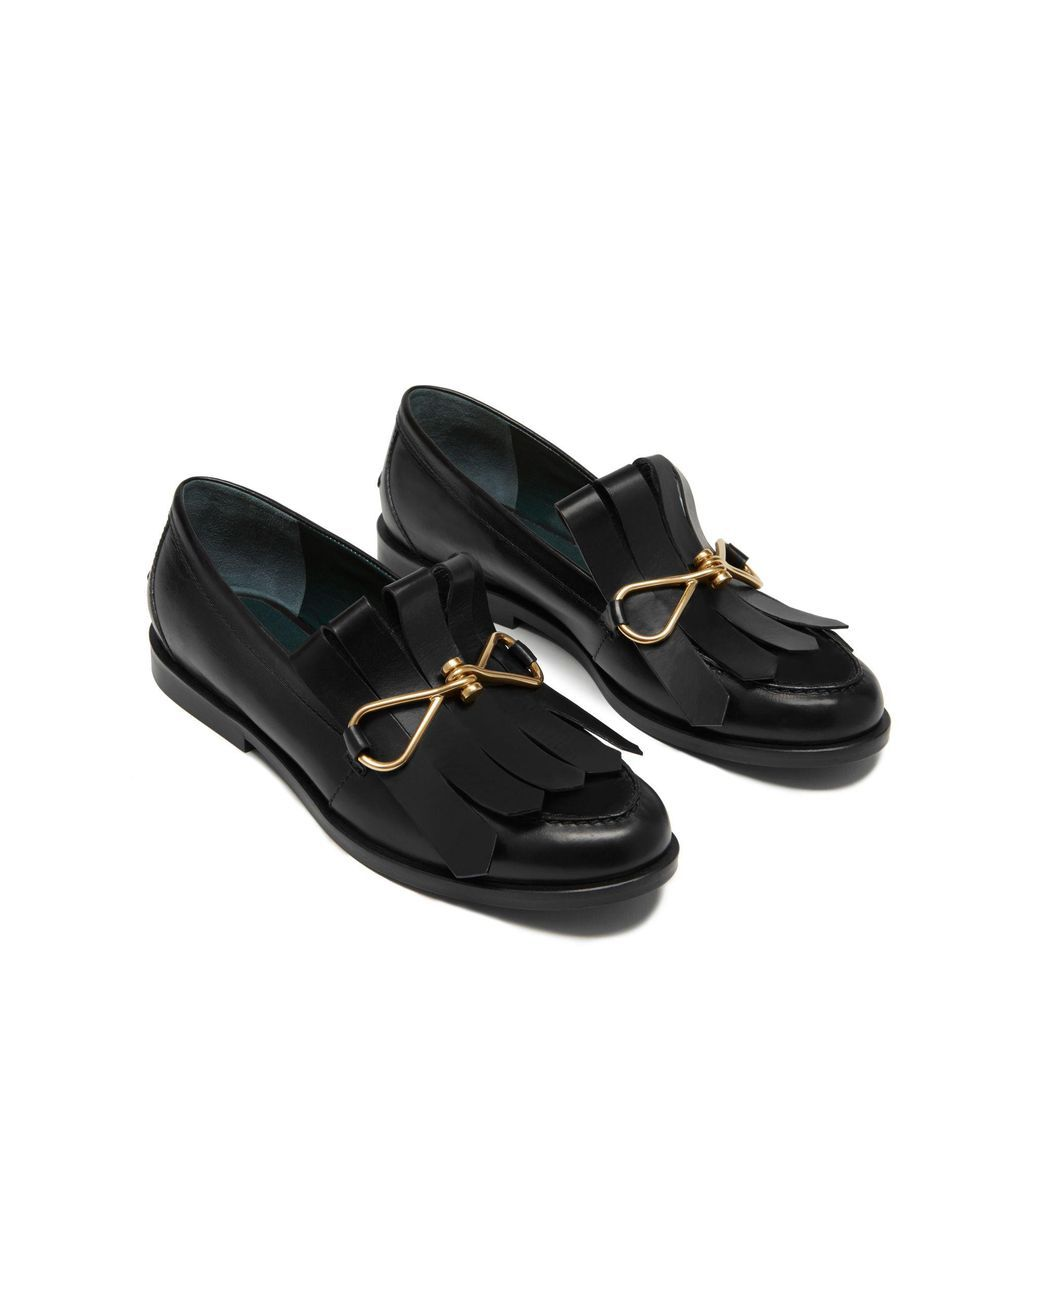 9f95f305cf3 Women s Black Charm Fringe Loafer